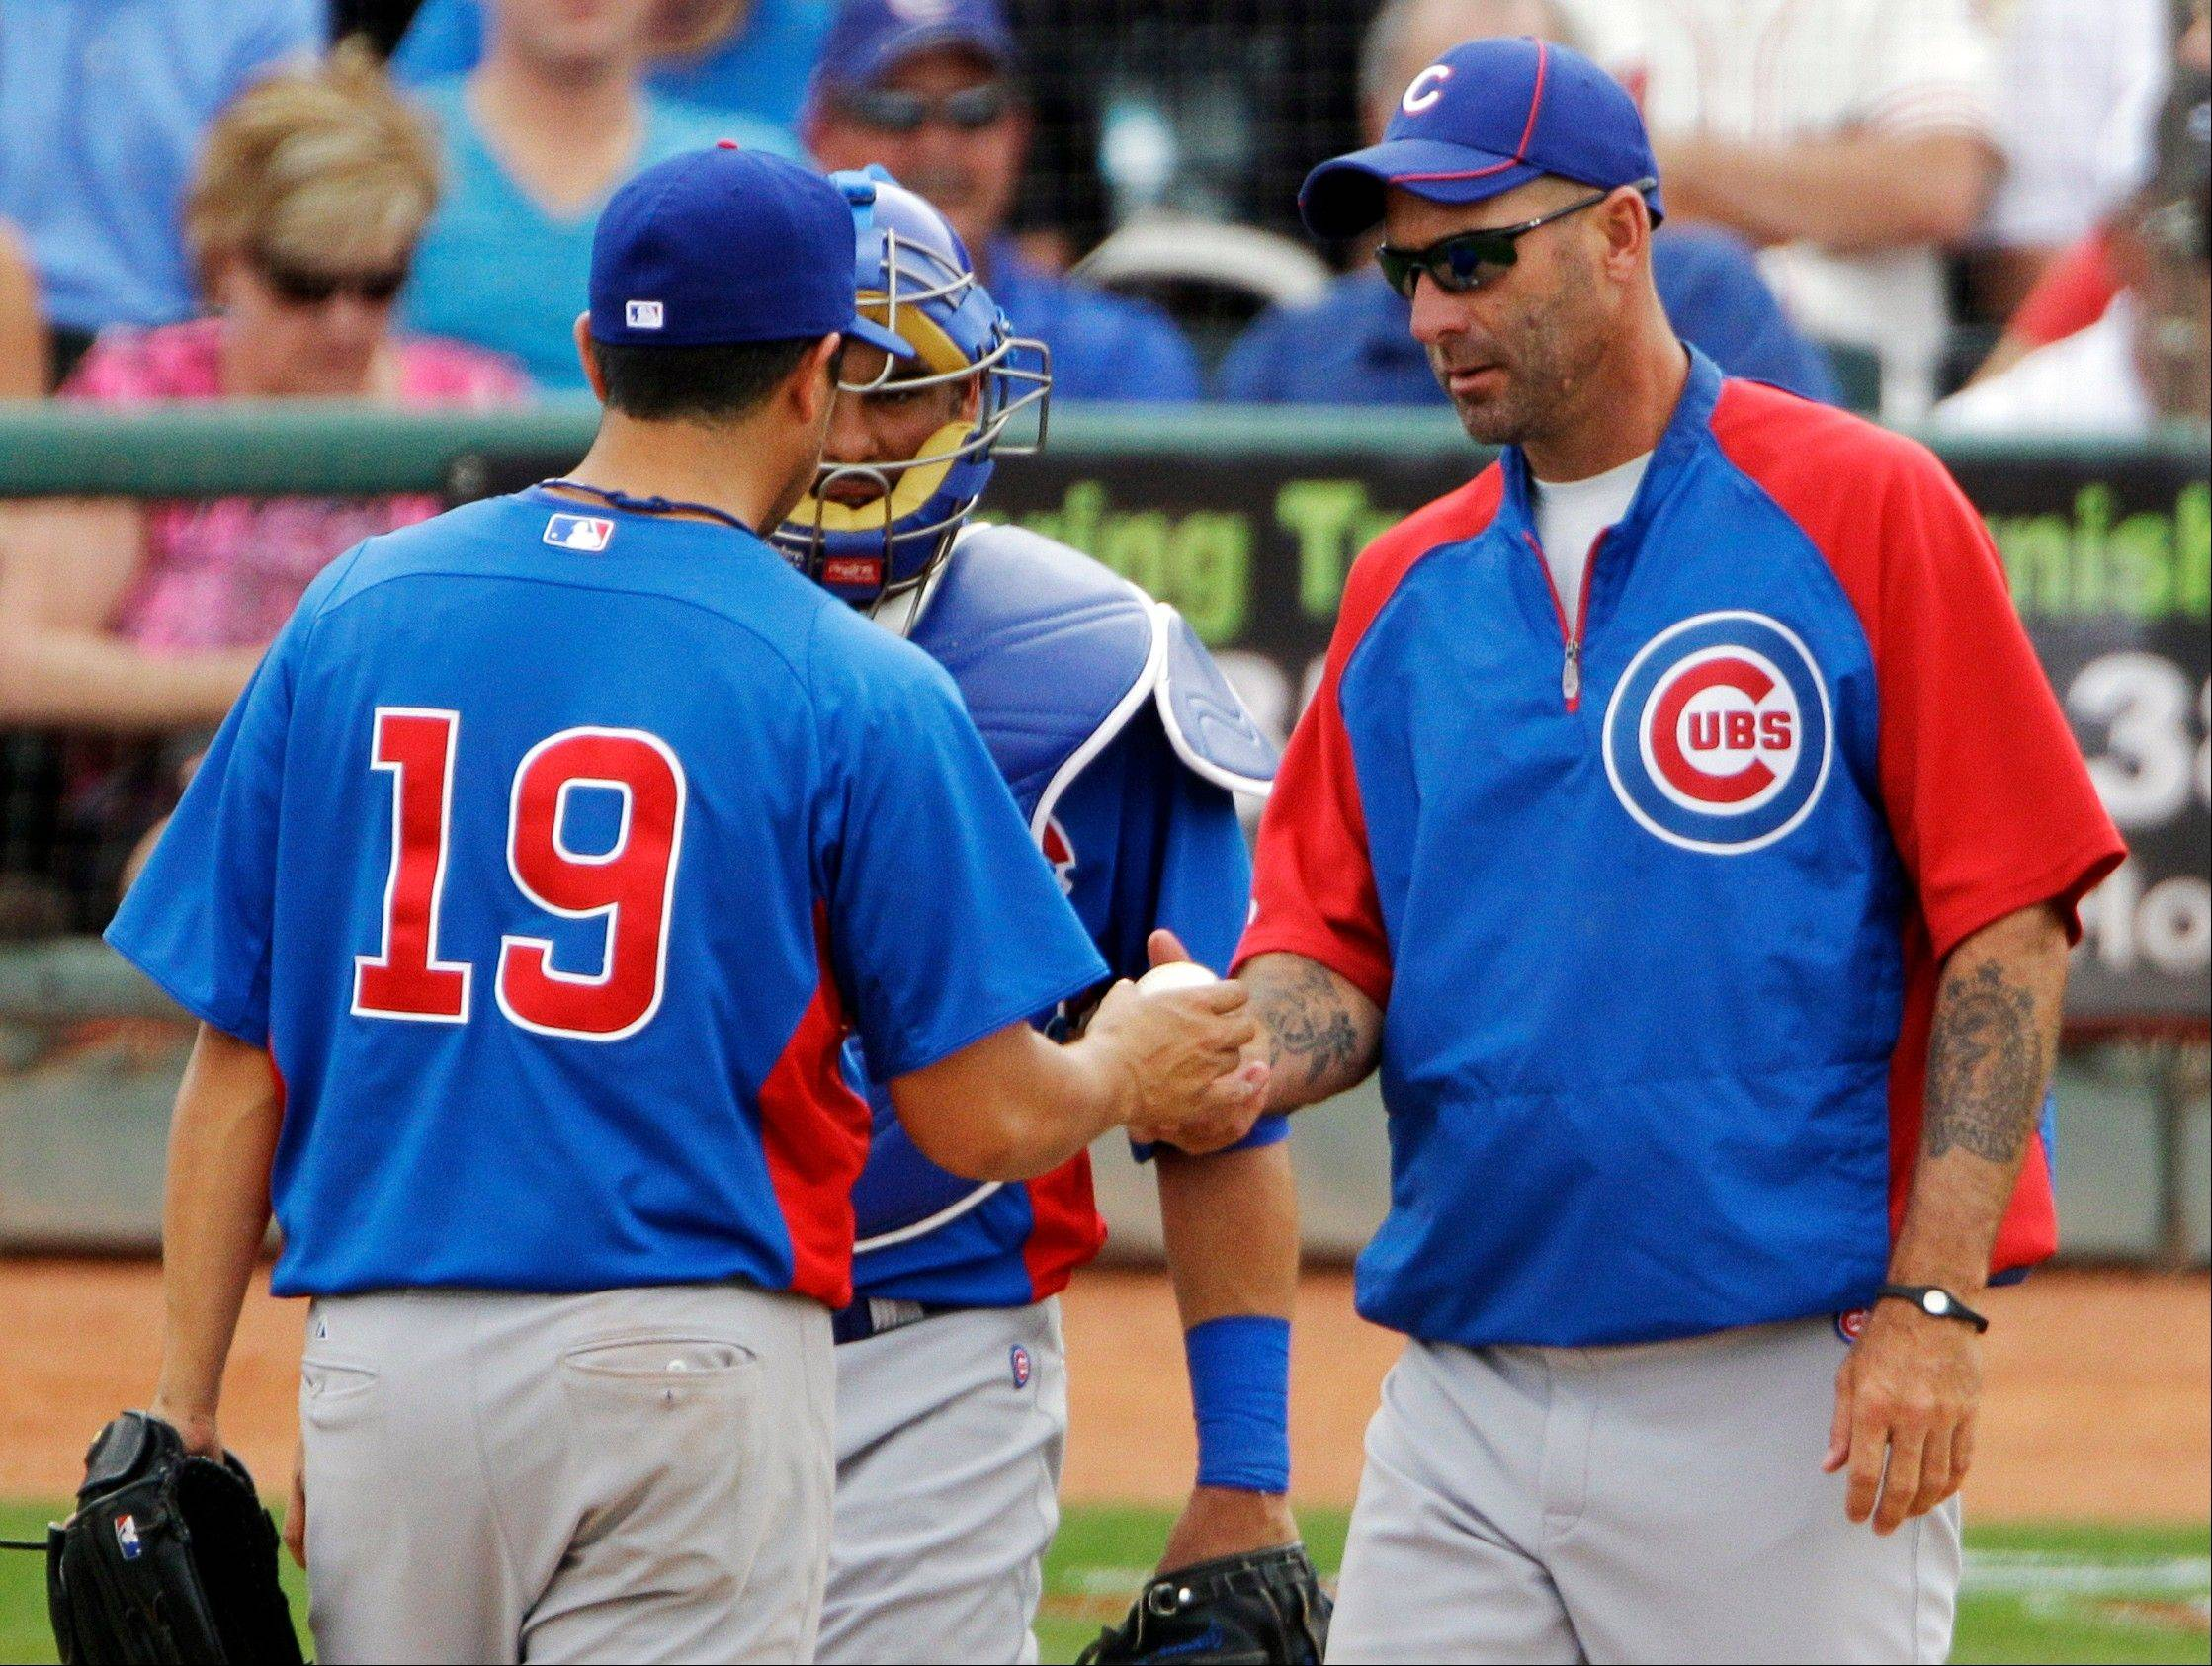 Chicago Cubs manager Dale Sveum, right, takes the ball from starting pitcher Rodrigo Lopez (19) in the fifth inning of a spring training baseball game Sunday against the Cleveland Indians in Goodyear, Ariz.